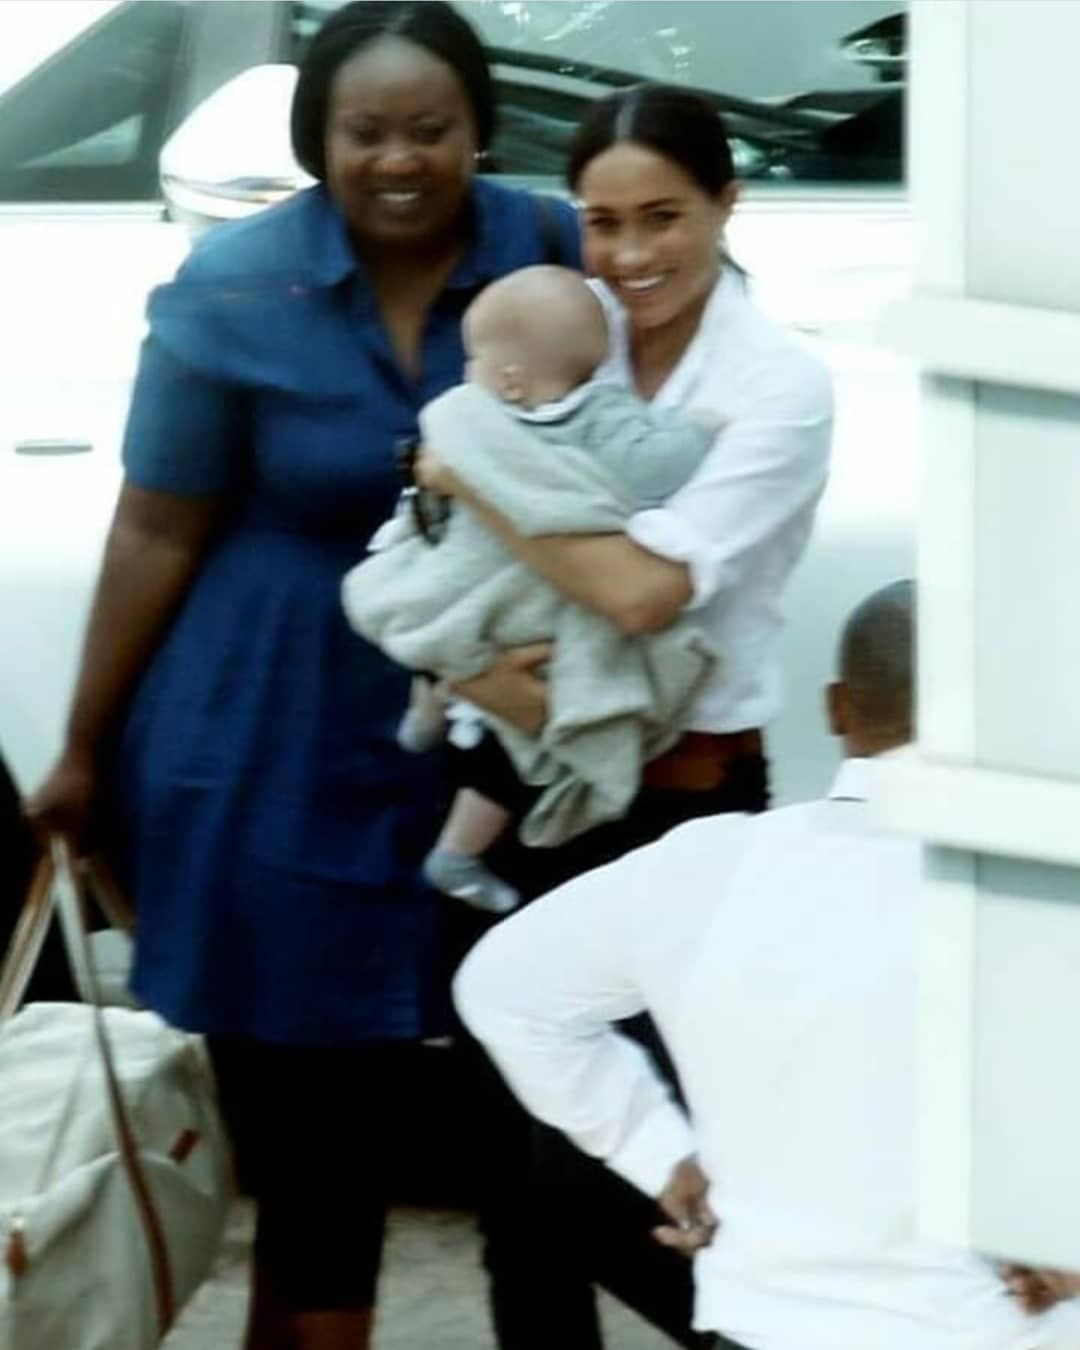 harry meghan archie on instagram meghan and archie with his nanny prince harry and megan prince harry prince harry and meghan meghan and archie with his nanny